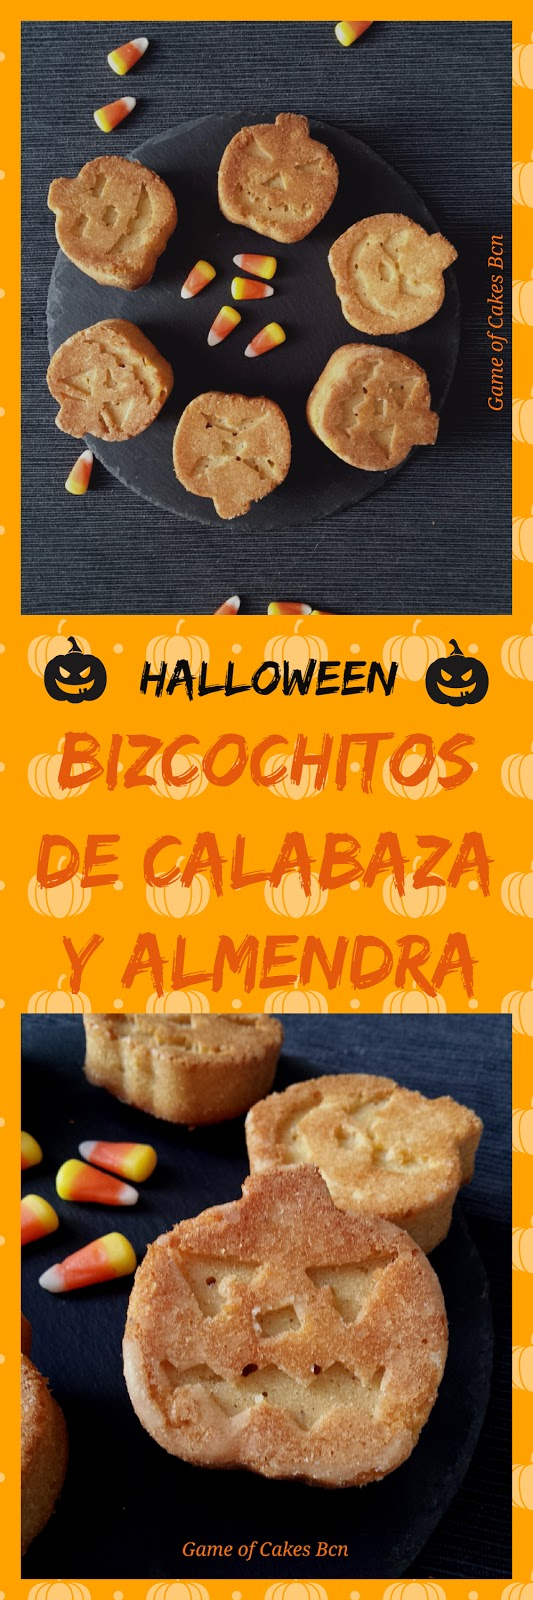 Halloween bizcochitos de calabaza y almendra Game of Cakes Bcn